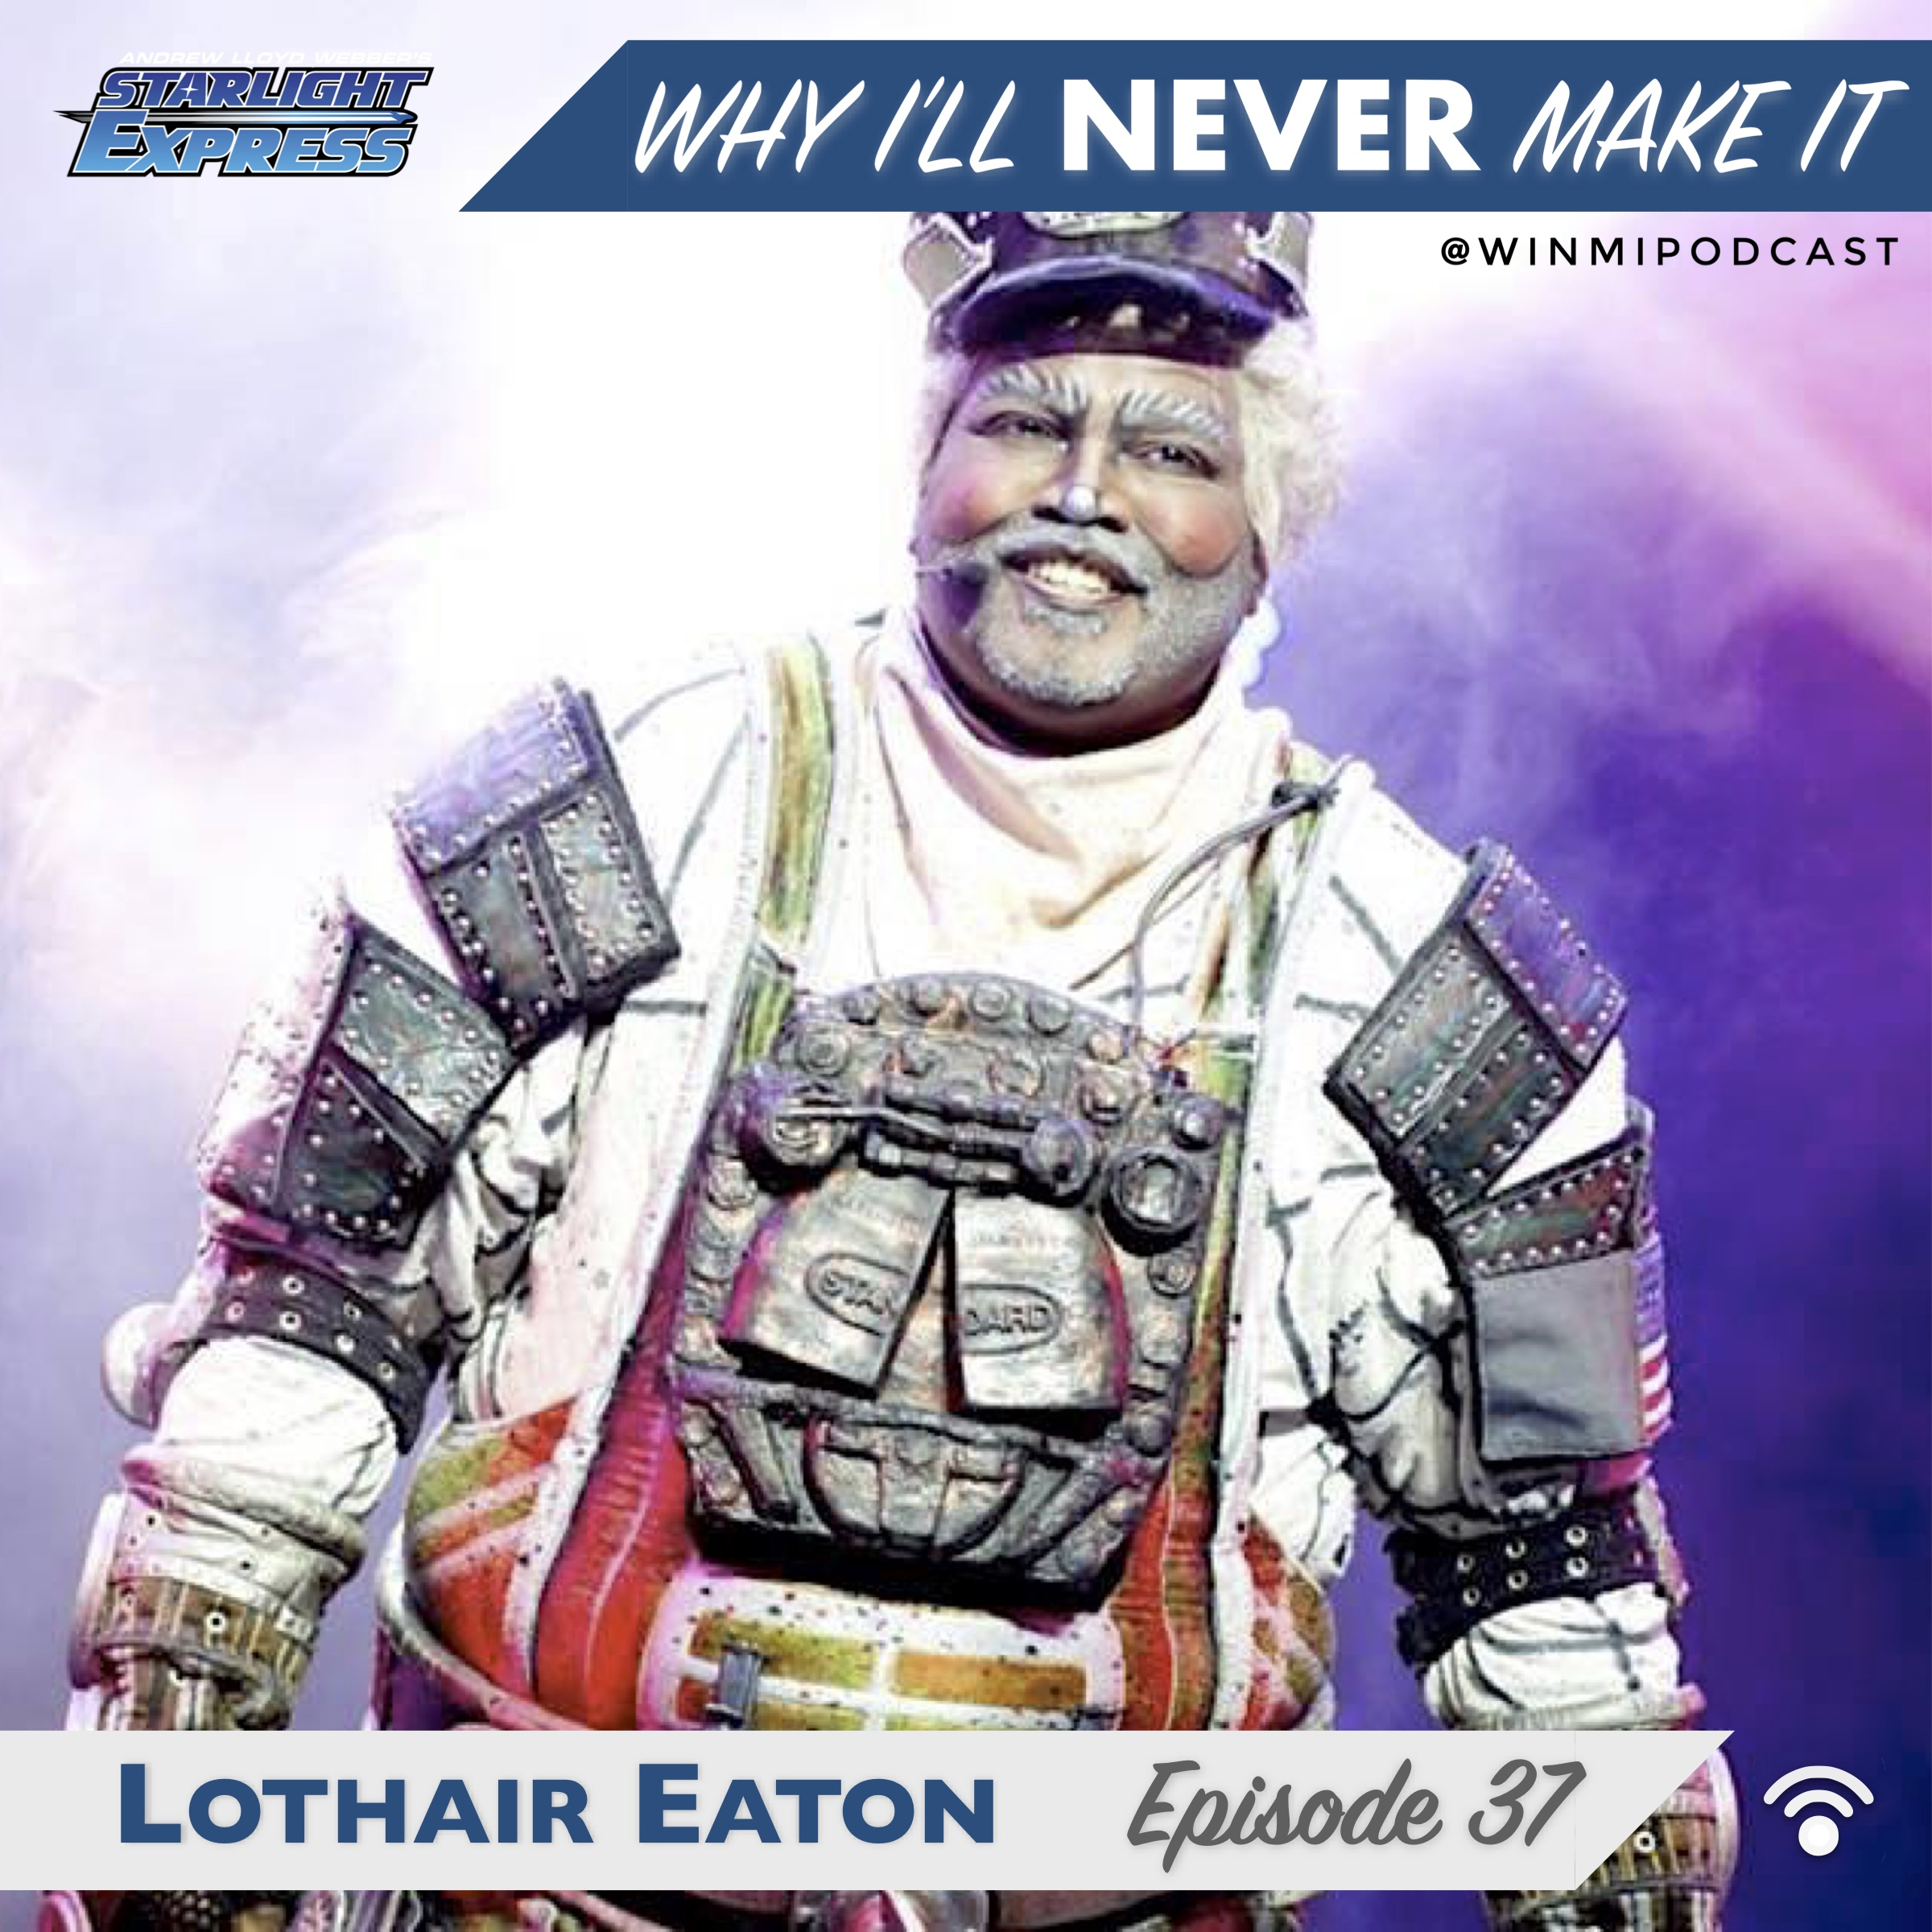 Lothair Eaton - Actor, Singer, U.K. and Germany STARLIGHT EXPRESS